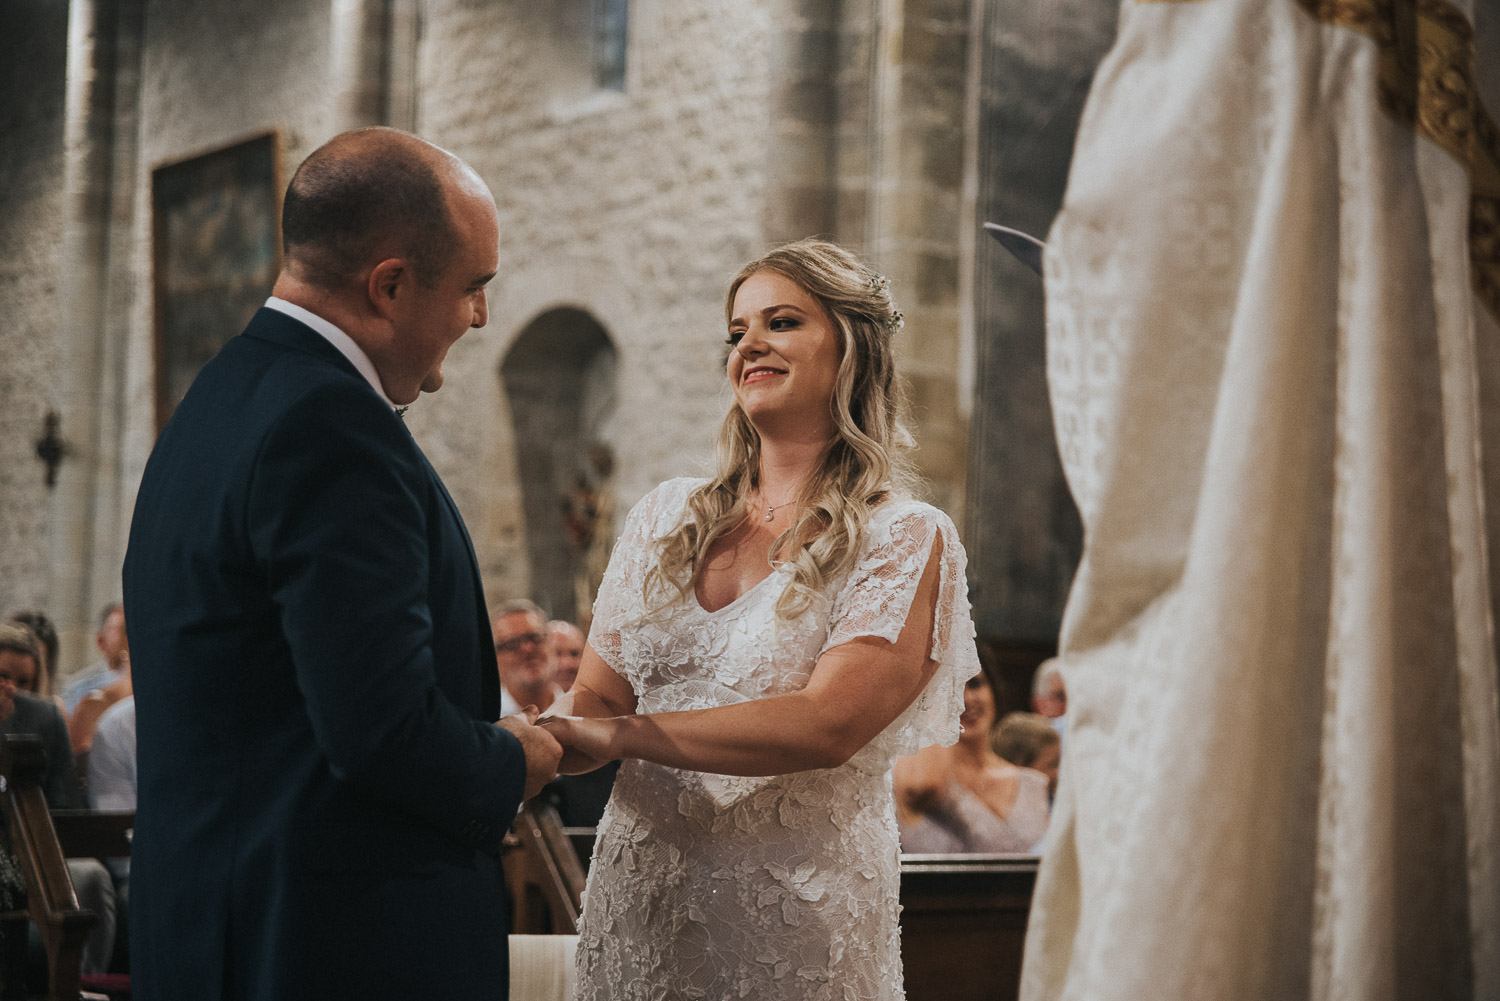 chateau_canet_carcassonne_wedding_katy_webb_photography_france_UK112